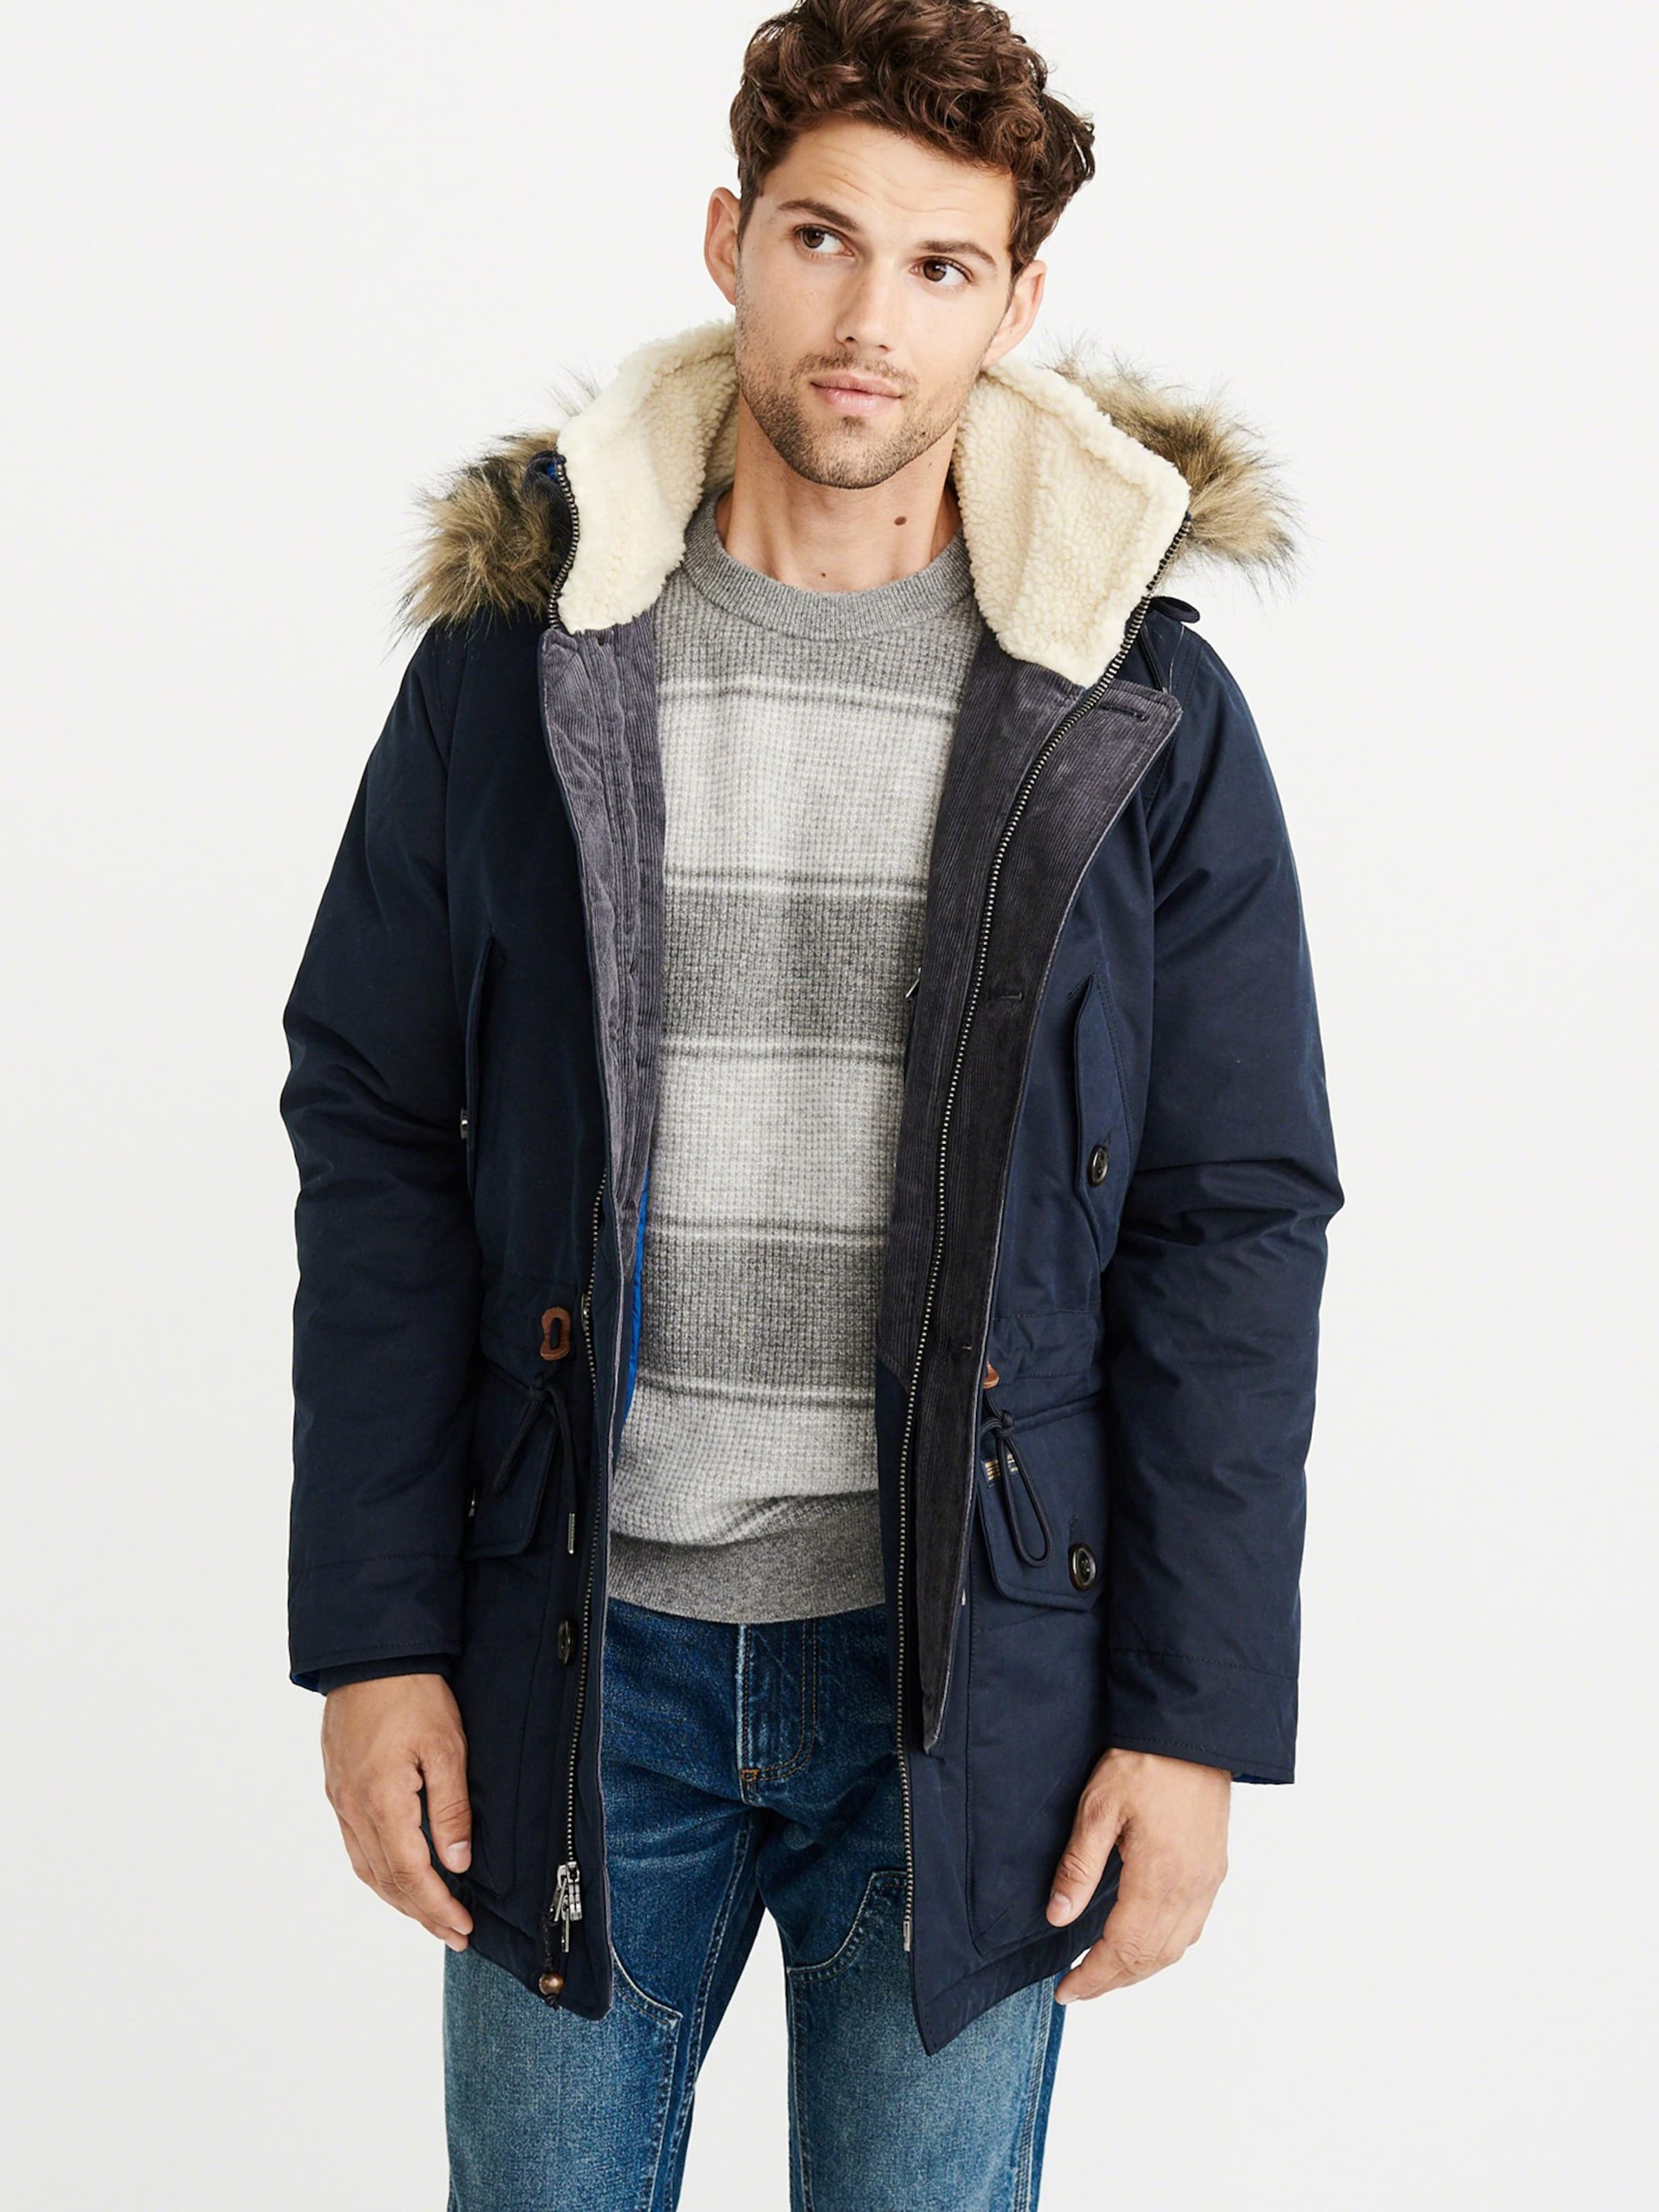 Abercrombieamp; In Fitch Parka 'expedition 4cc' Navy LSMVpUzqG